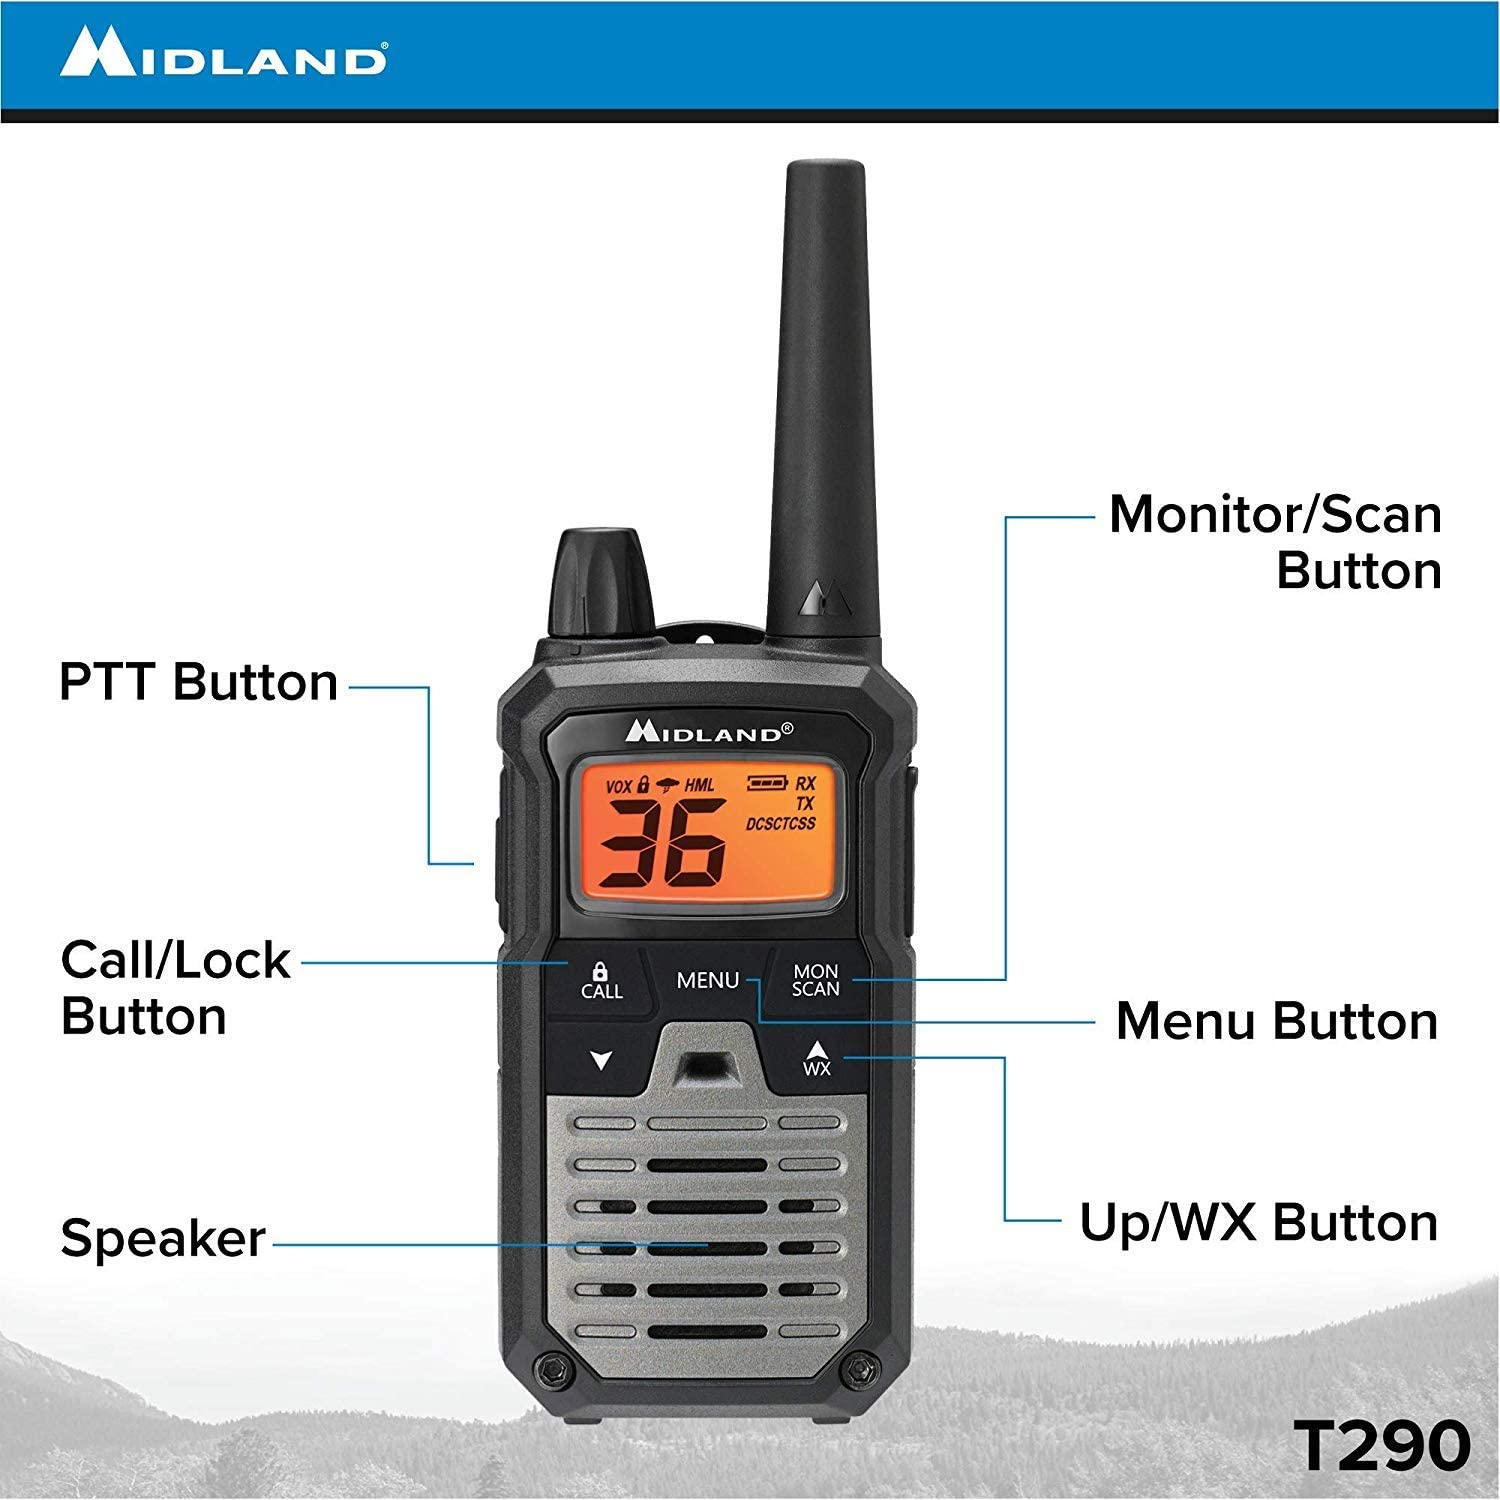 Midland 36 Channel GMRS Two-Way Radio Pair Pack 121 Privacy Codes X-TALKER T295VP4 Mossy Oak Camo Extended Range Walkie Talkie NOAA Weather Scan Alert